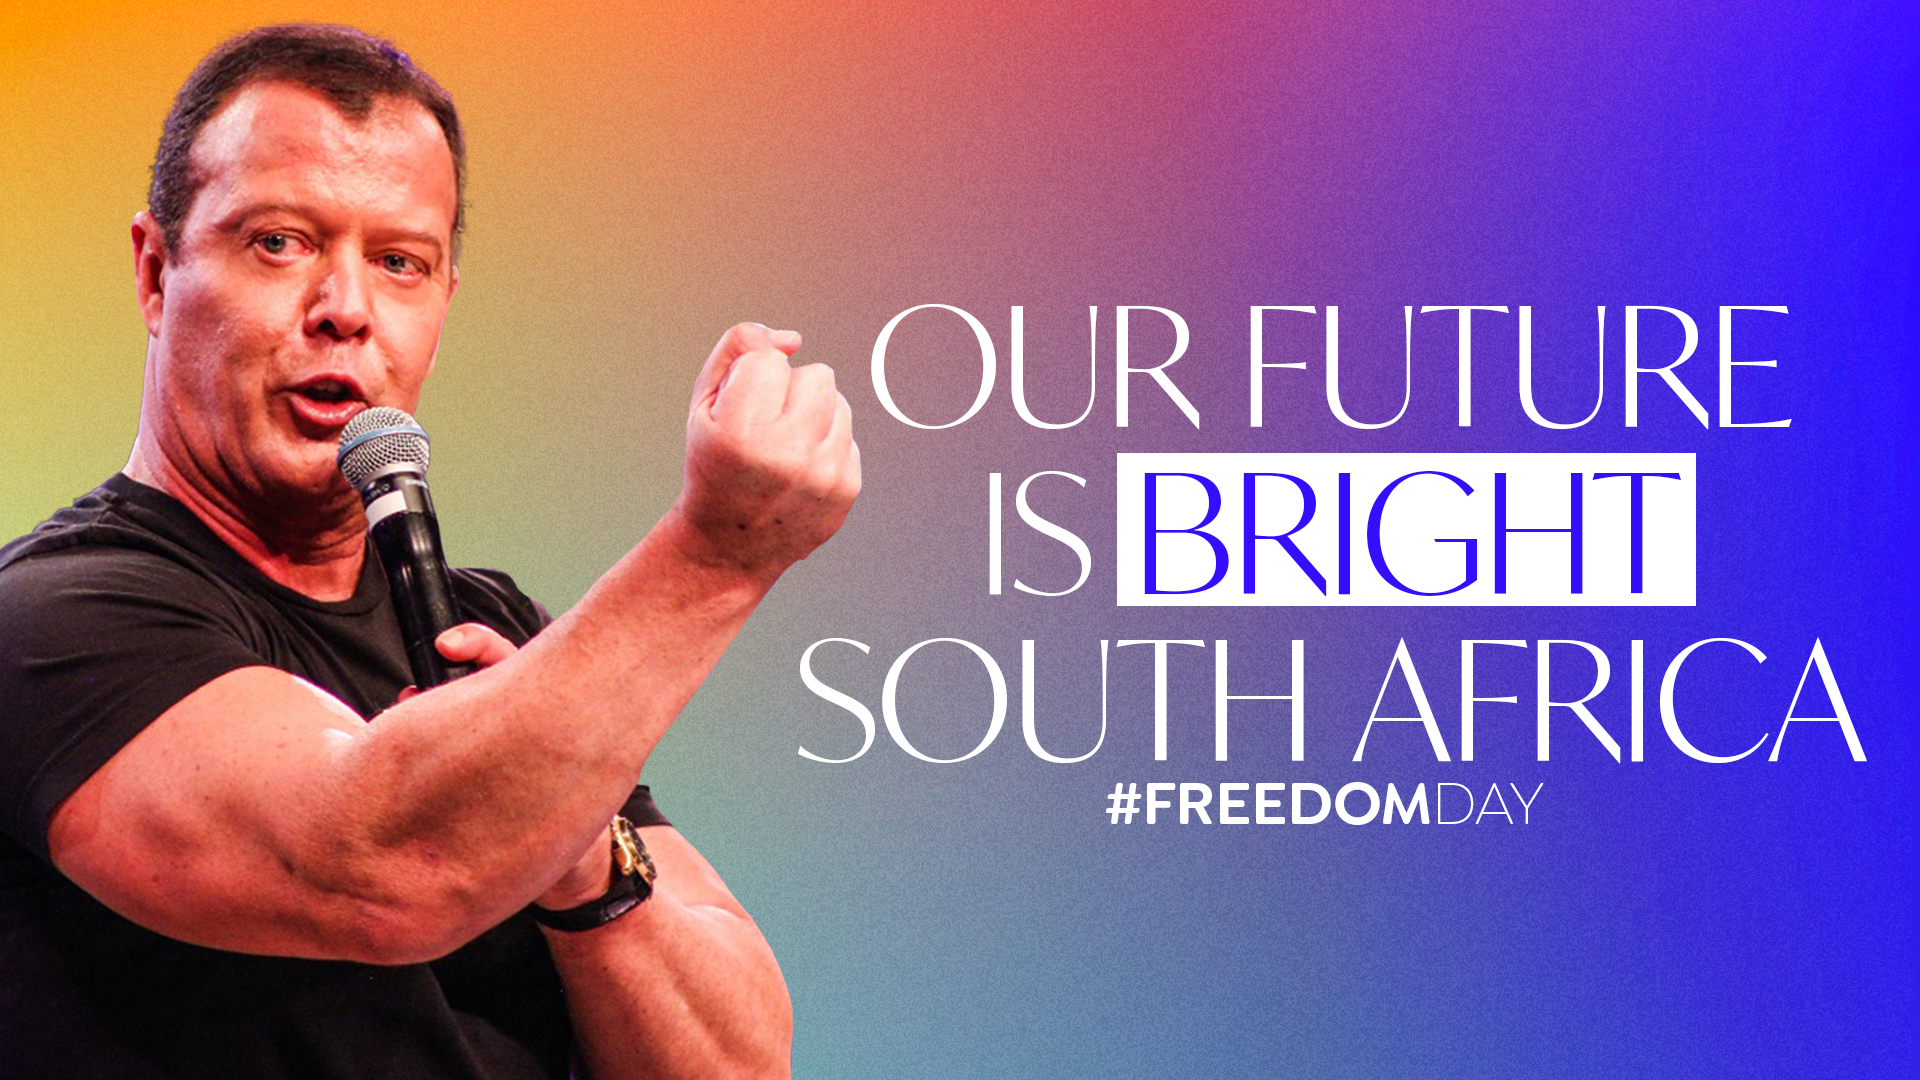 Our Future is Bright South Africa #FreedomDay